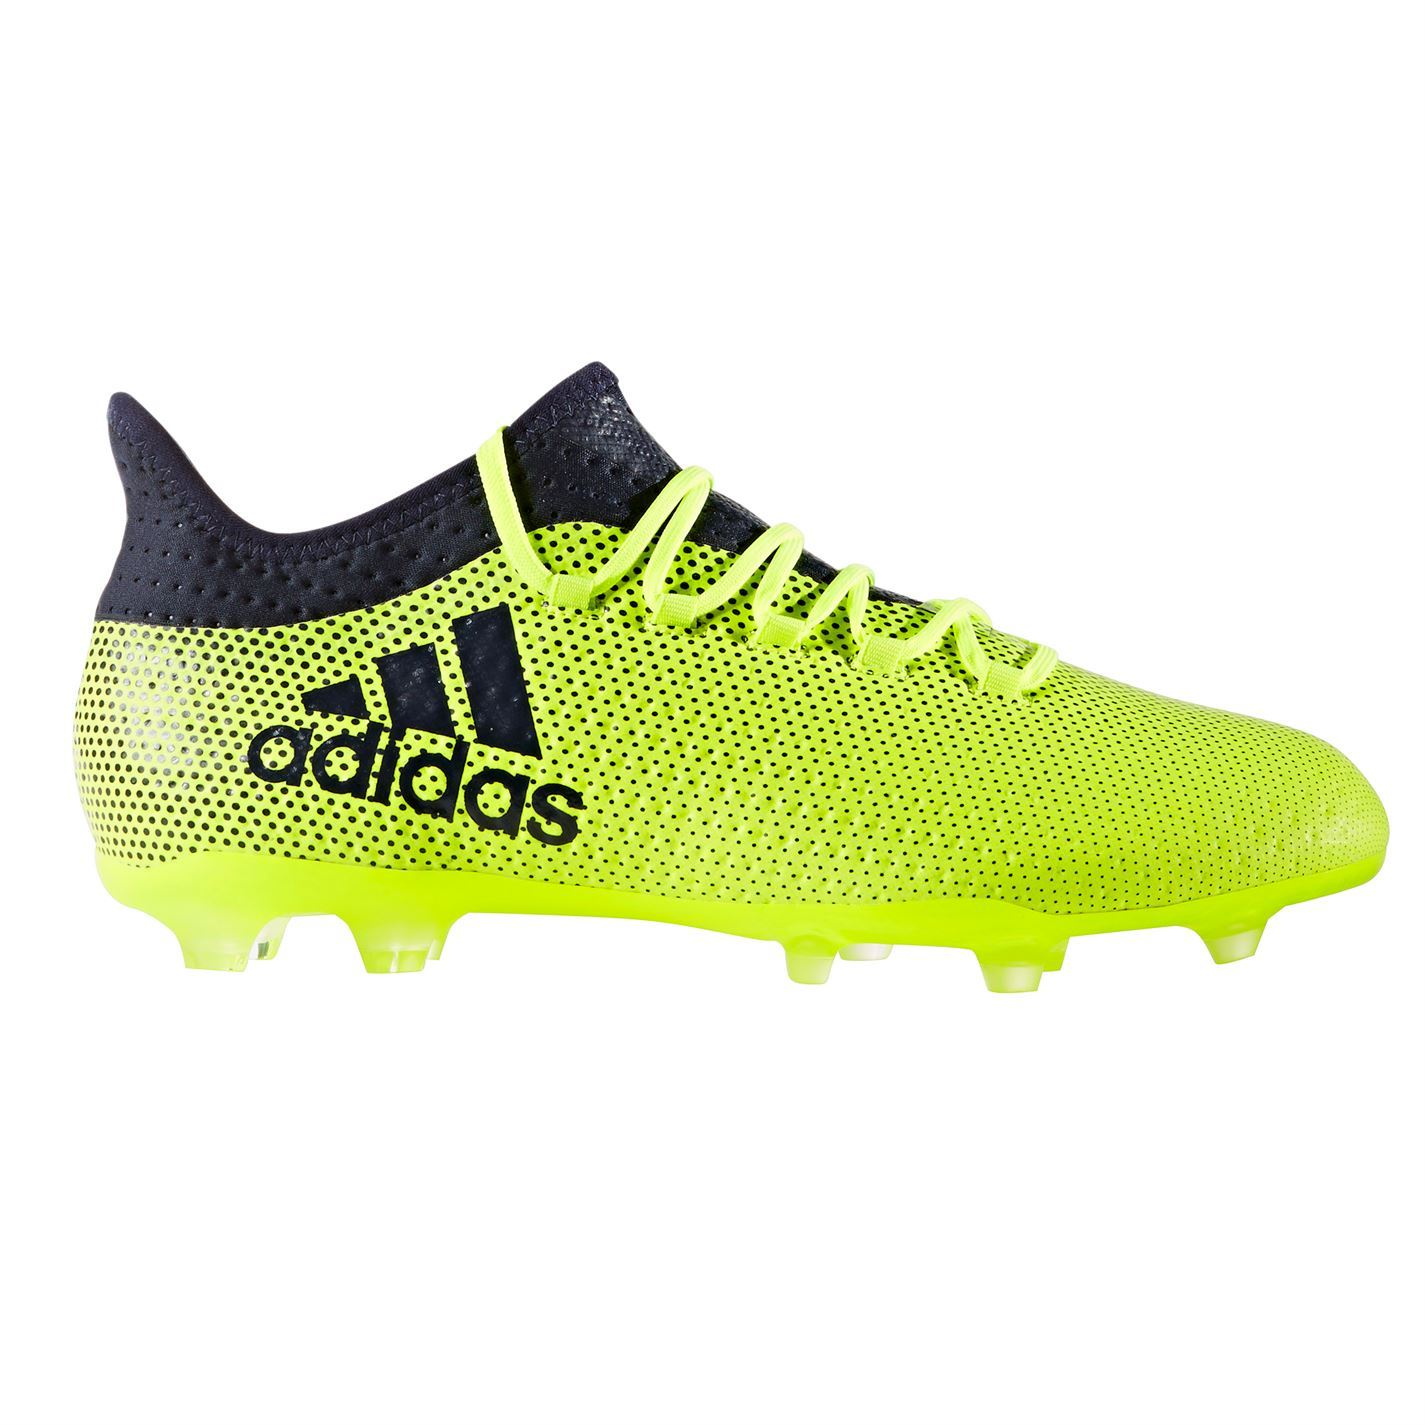 big sale f7c80 e596a Details about adidas X 17.2 FG Firm Ground Football Boots Mens Yellow/Ink  Soccer Shoes Cleats